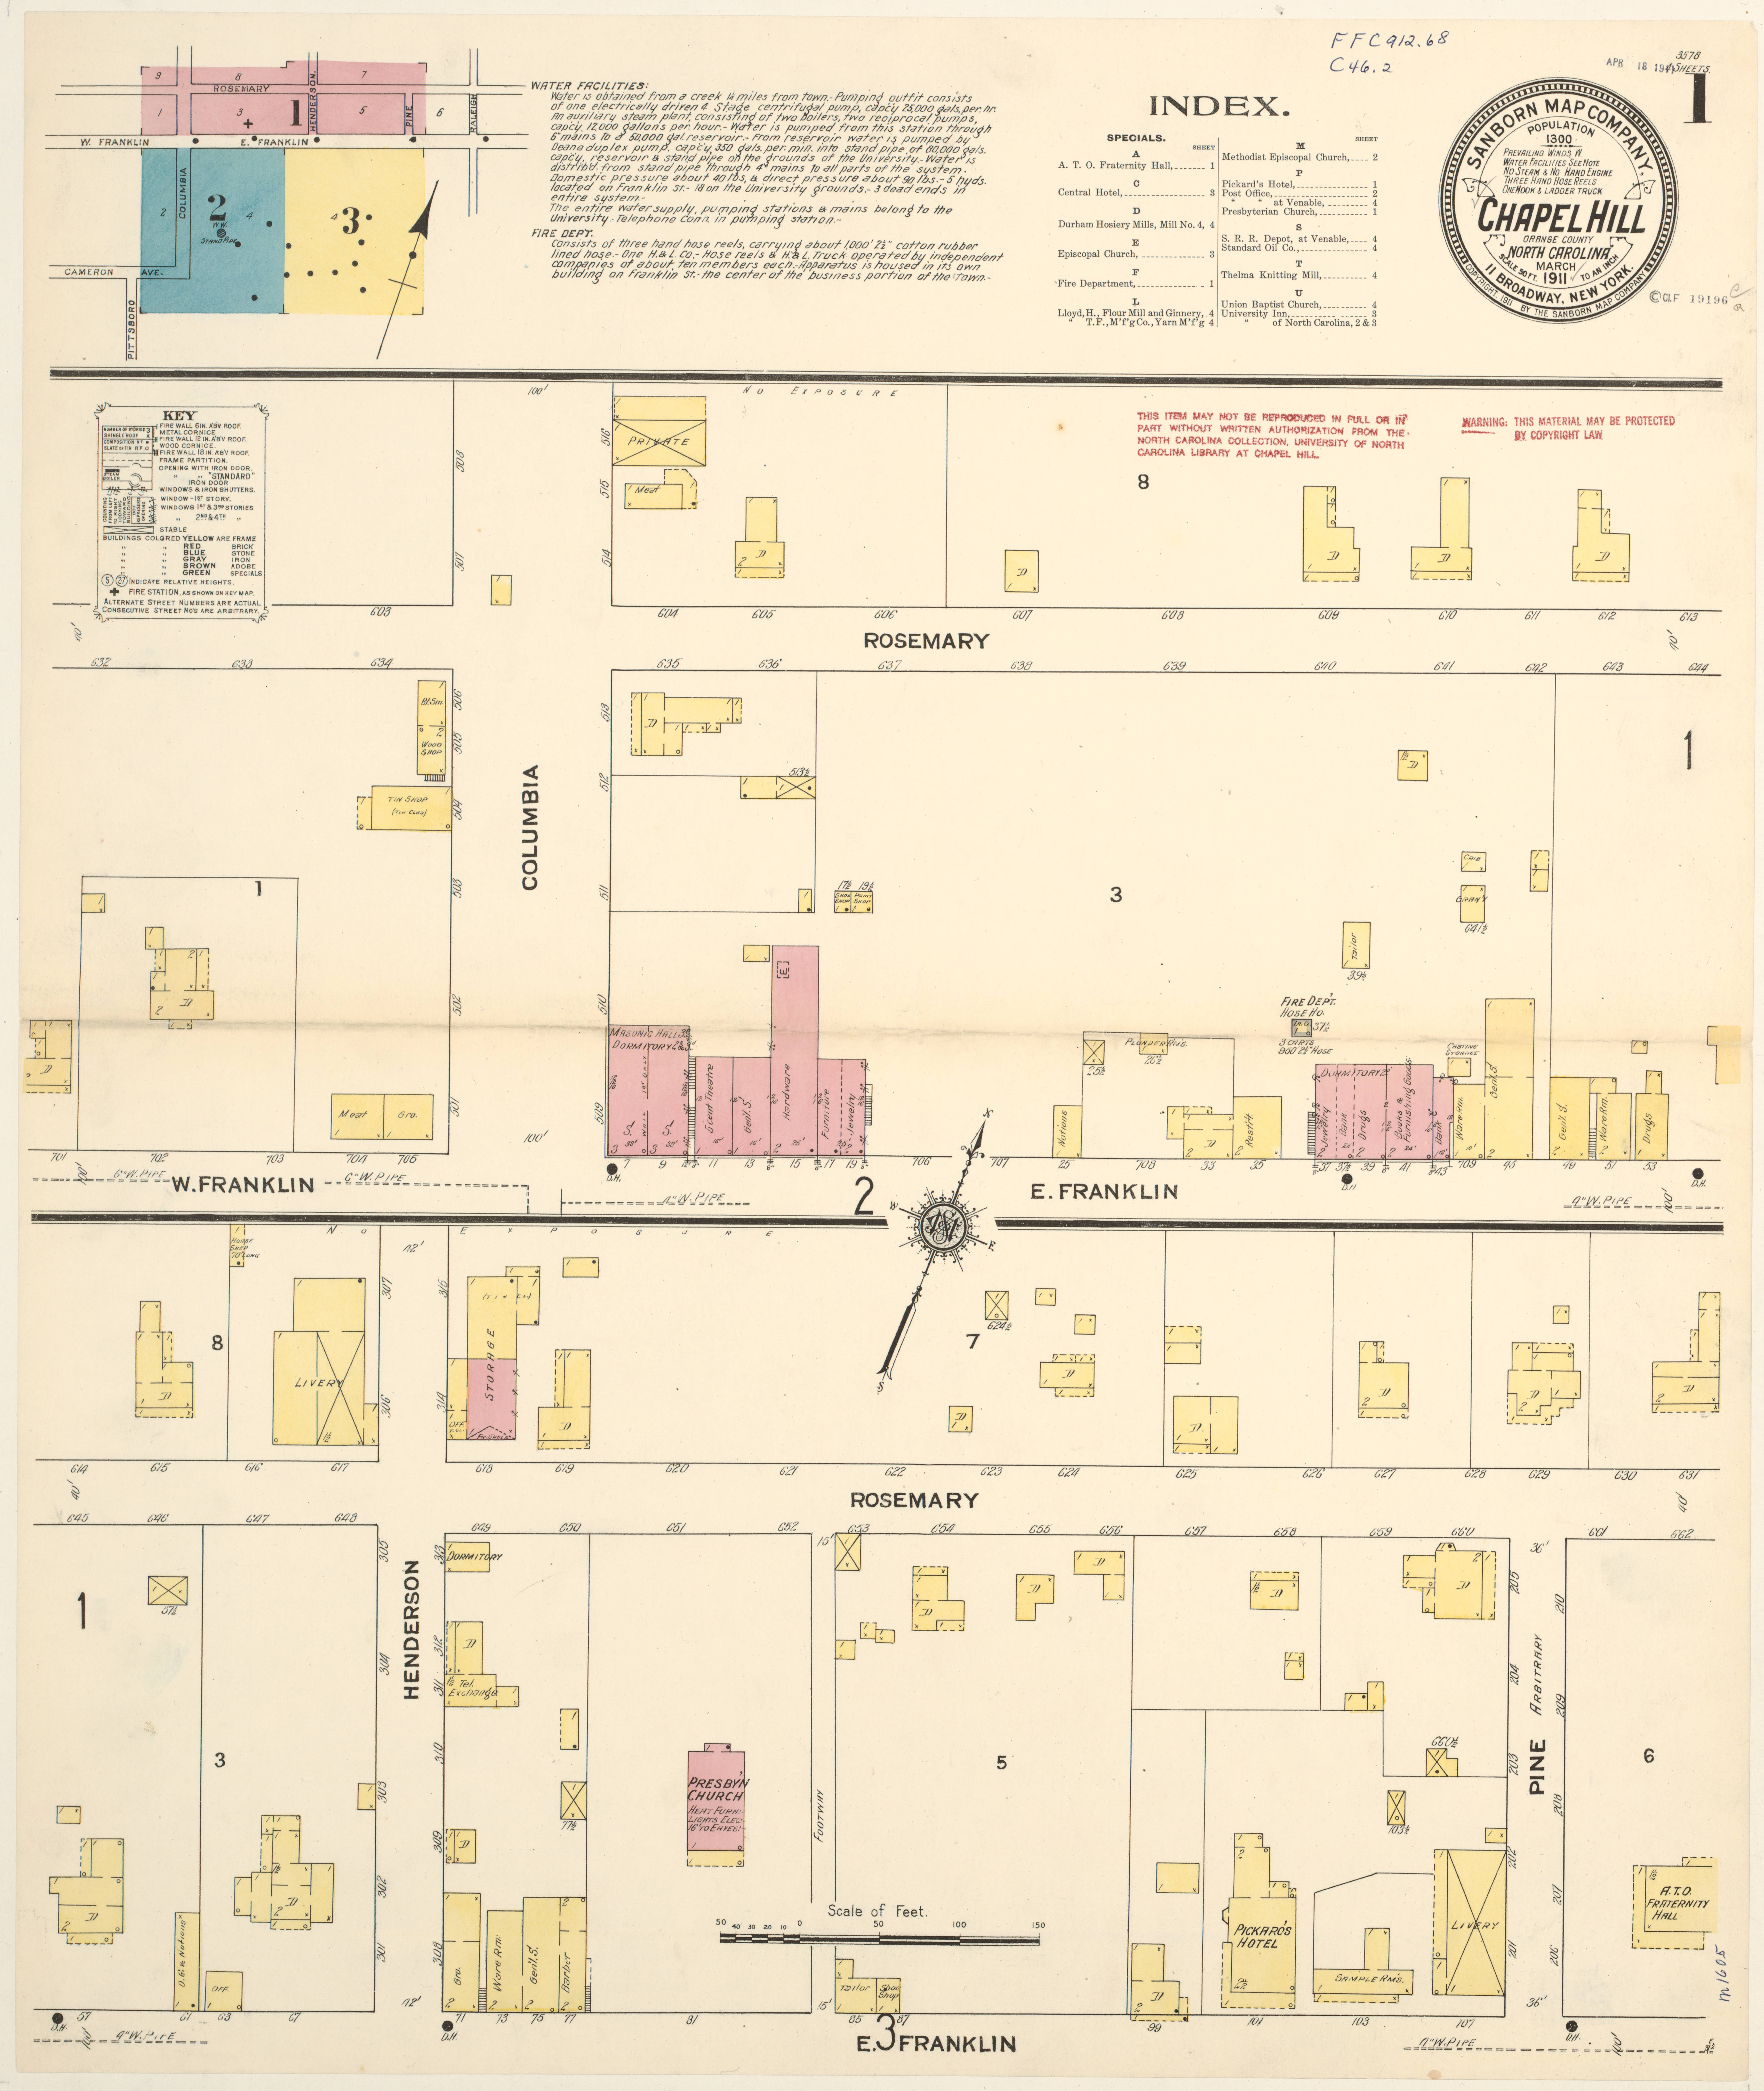 Sanborn Map of Chapel Hill, 1911